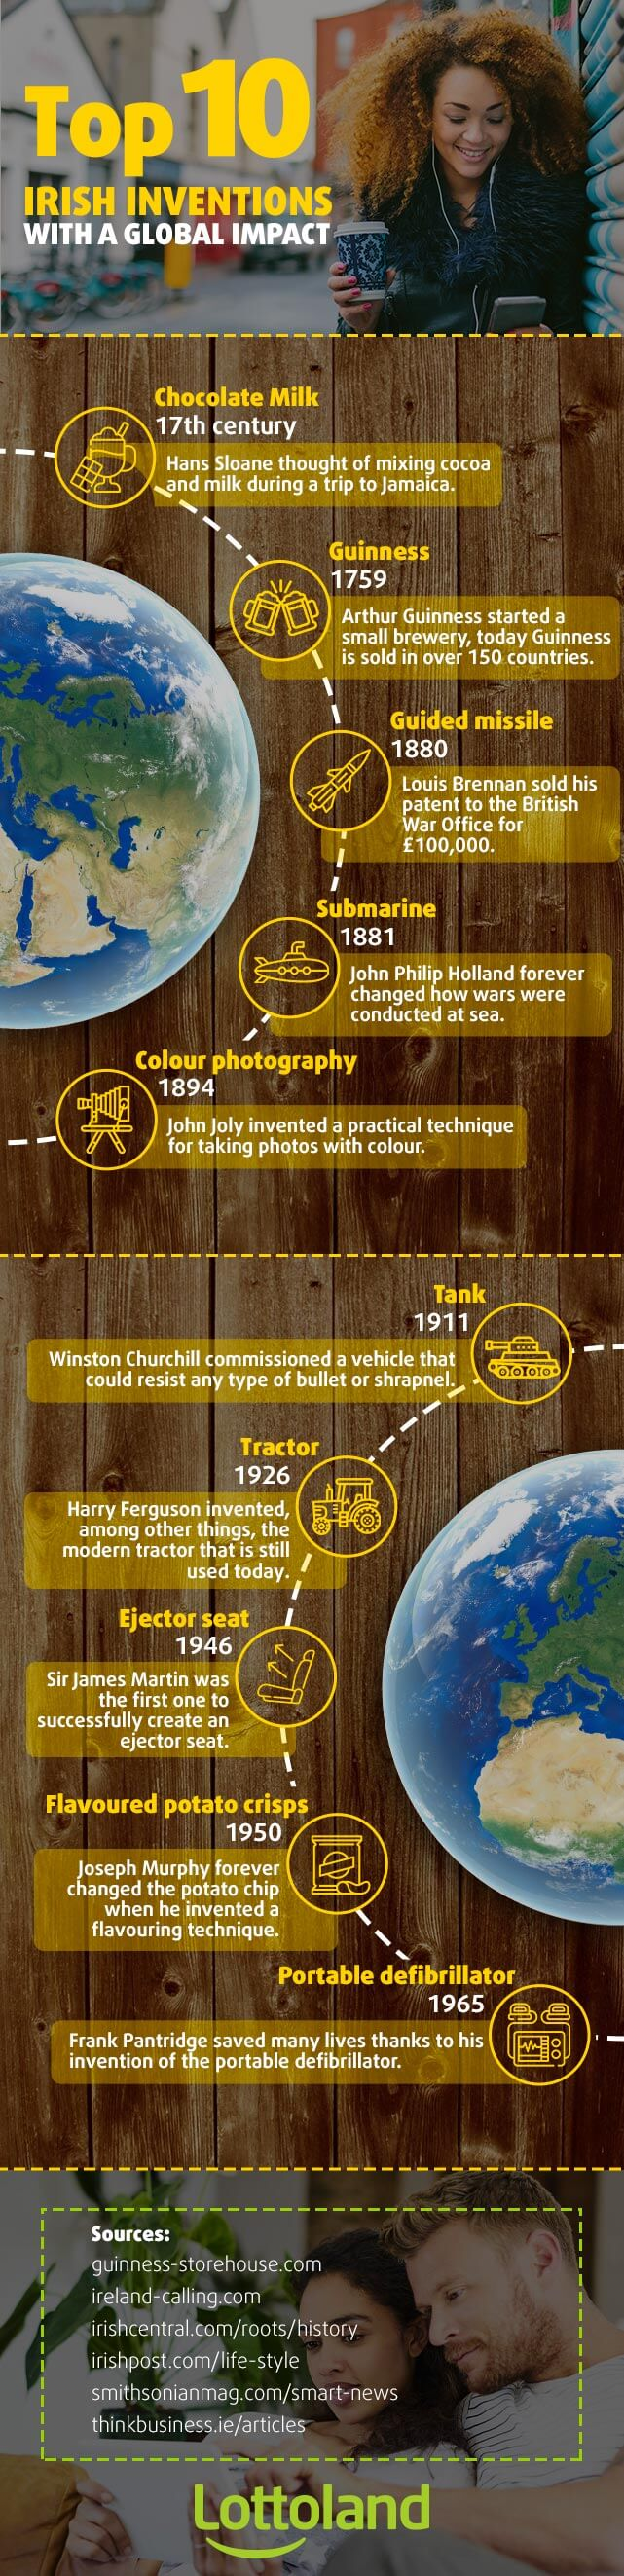 Infographic with 10 Irish inventions which had a global impact